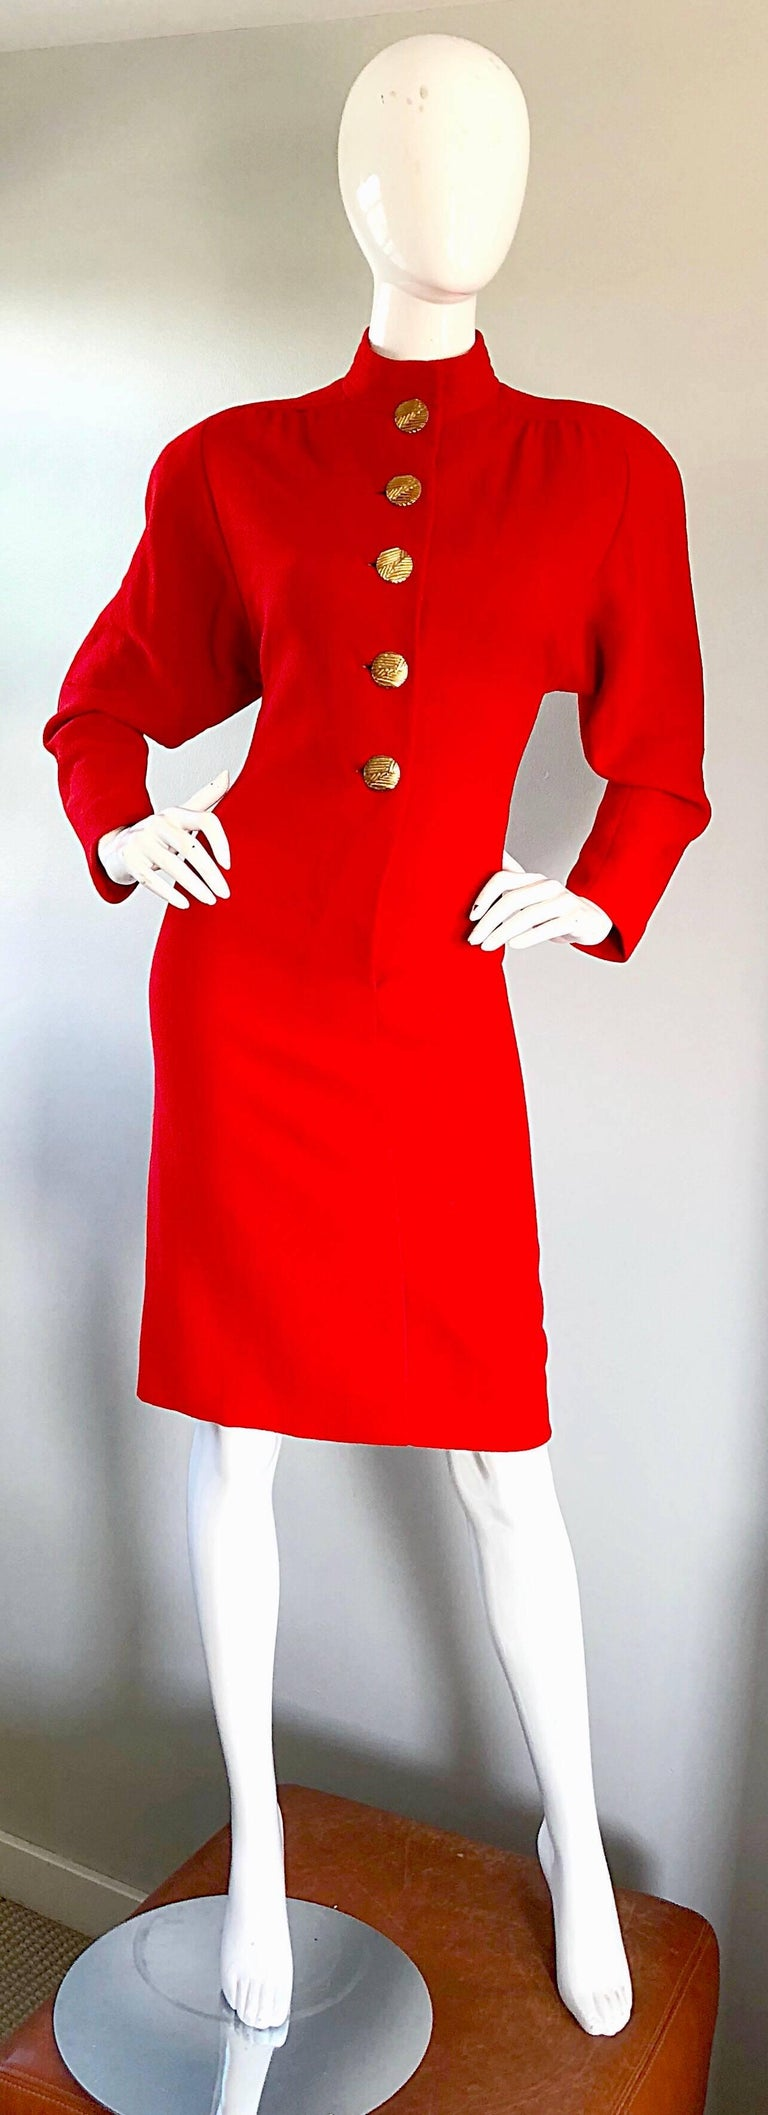 Beautiful vintage 80s JAMES GALANOS for I MAGNIN lipstick red virgin wool long sleeve dress! In true Galanos fashion, this beauty is extremely well made, with an immense amount of attention to detail. Fully lined in red silk chiffon, this soft